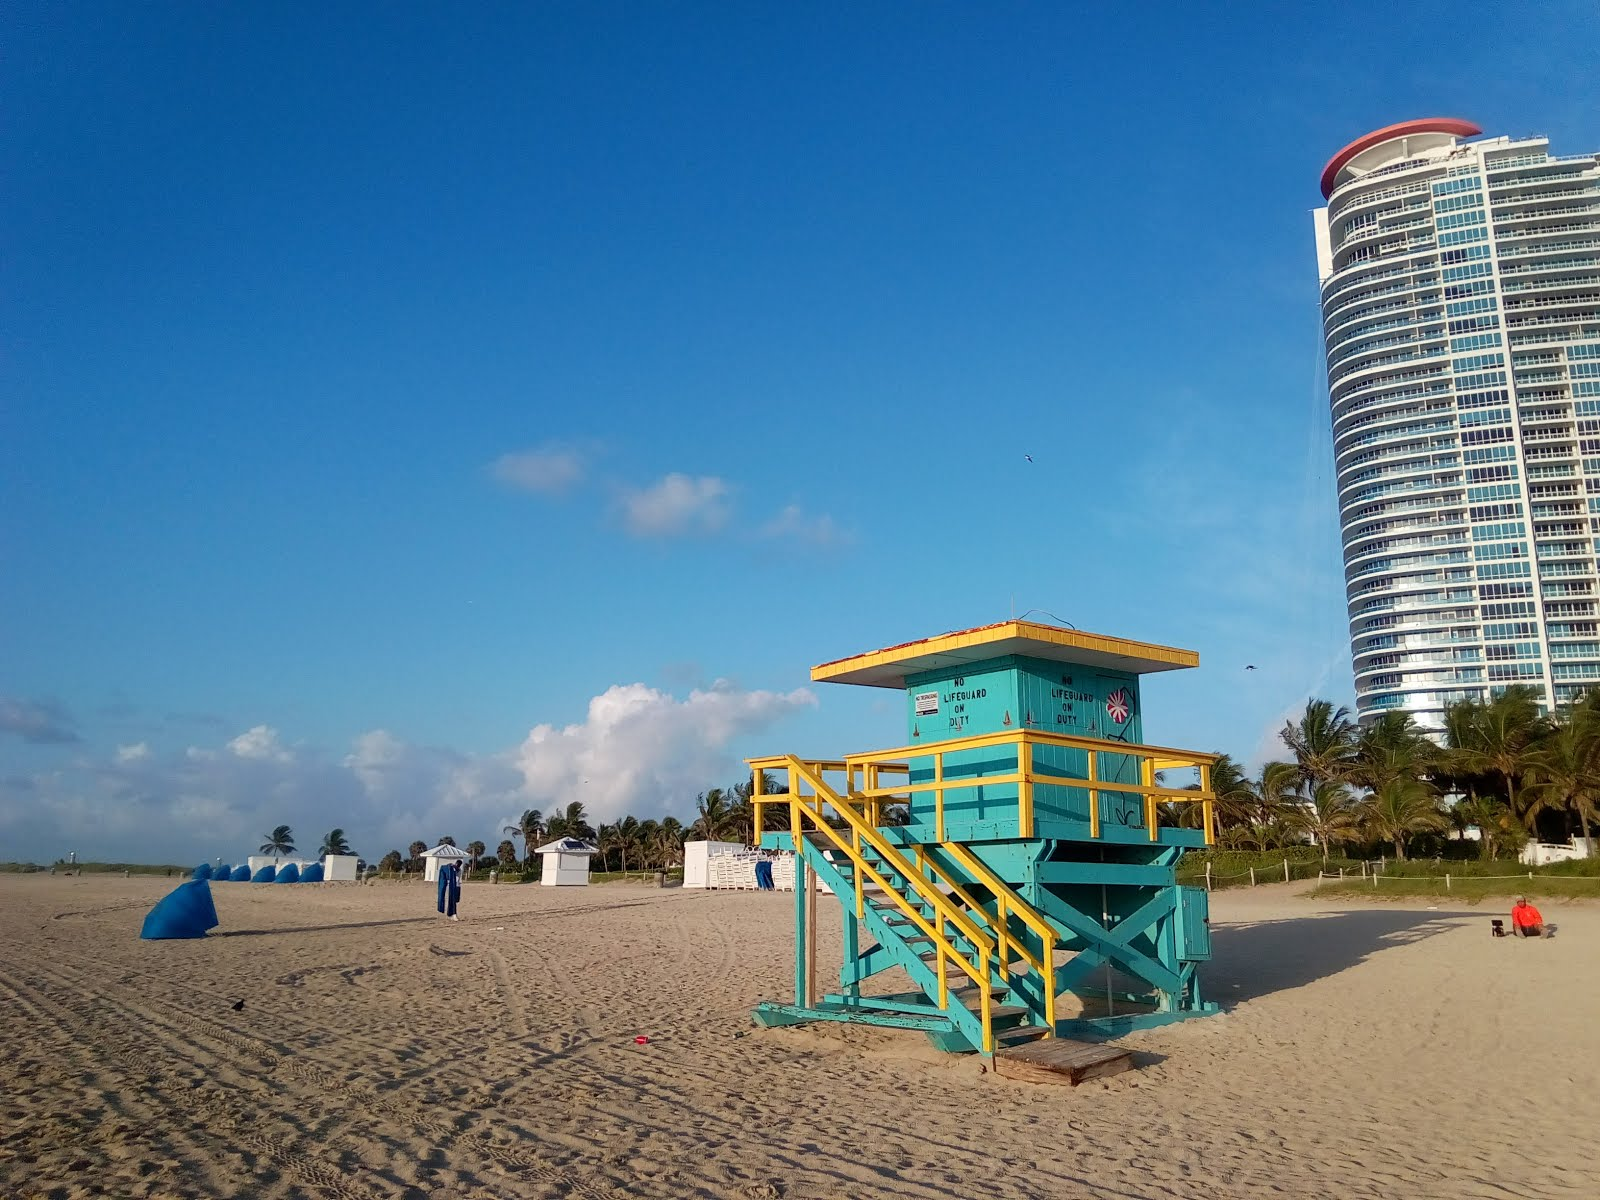 #SouthBeach on an early Sunday morning